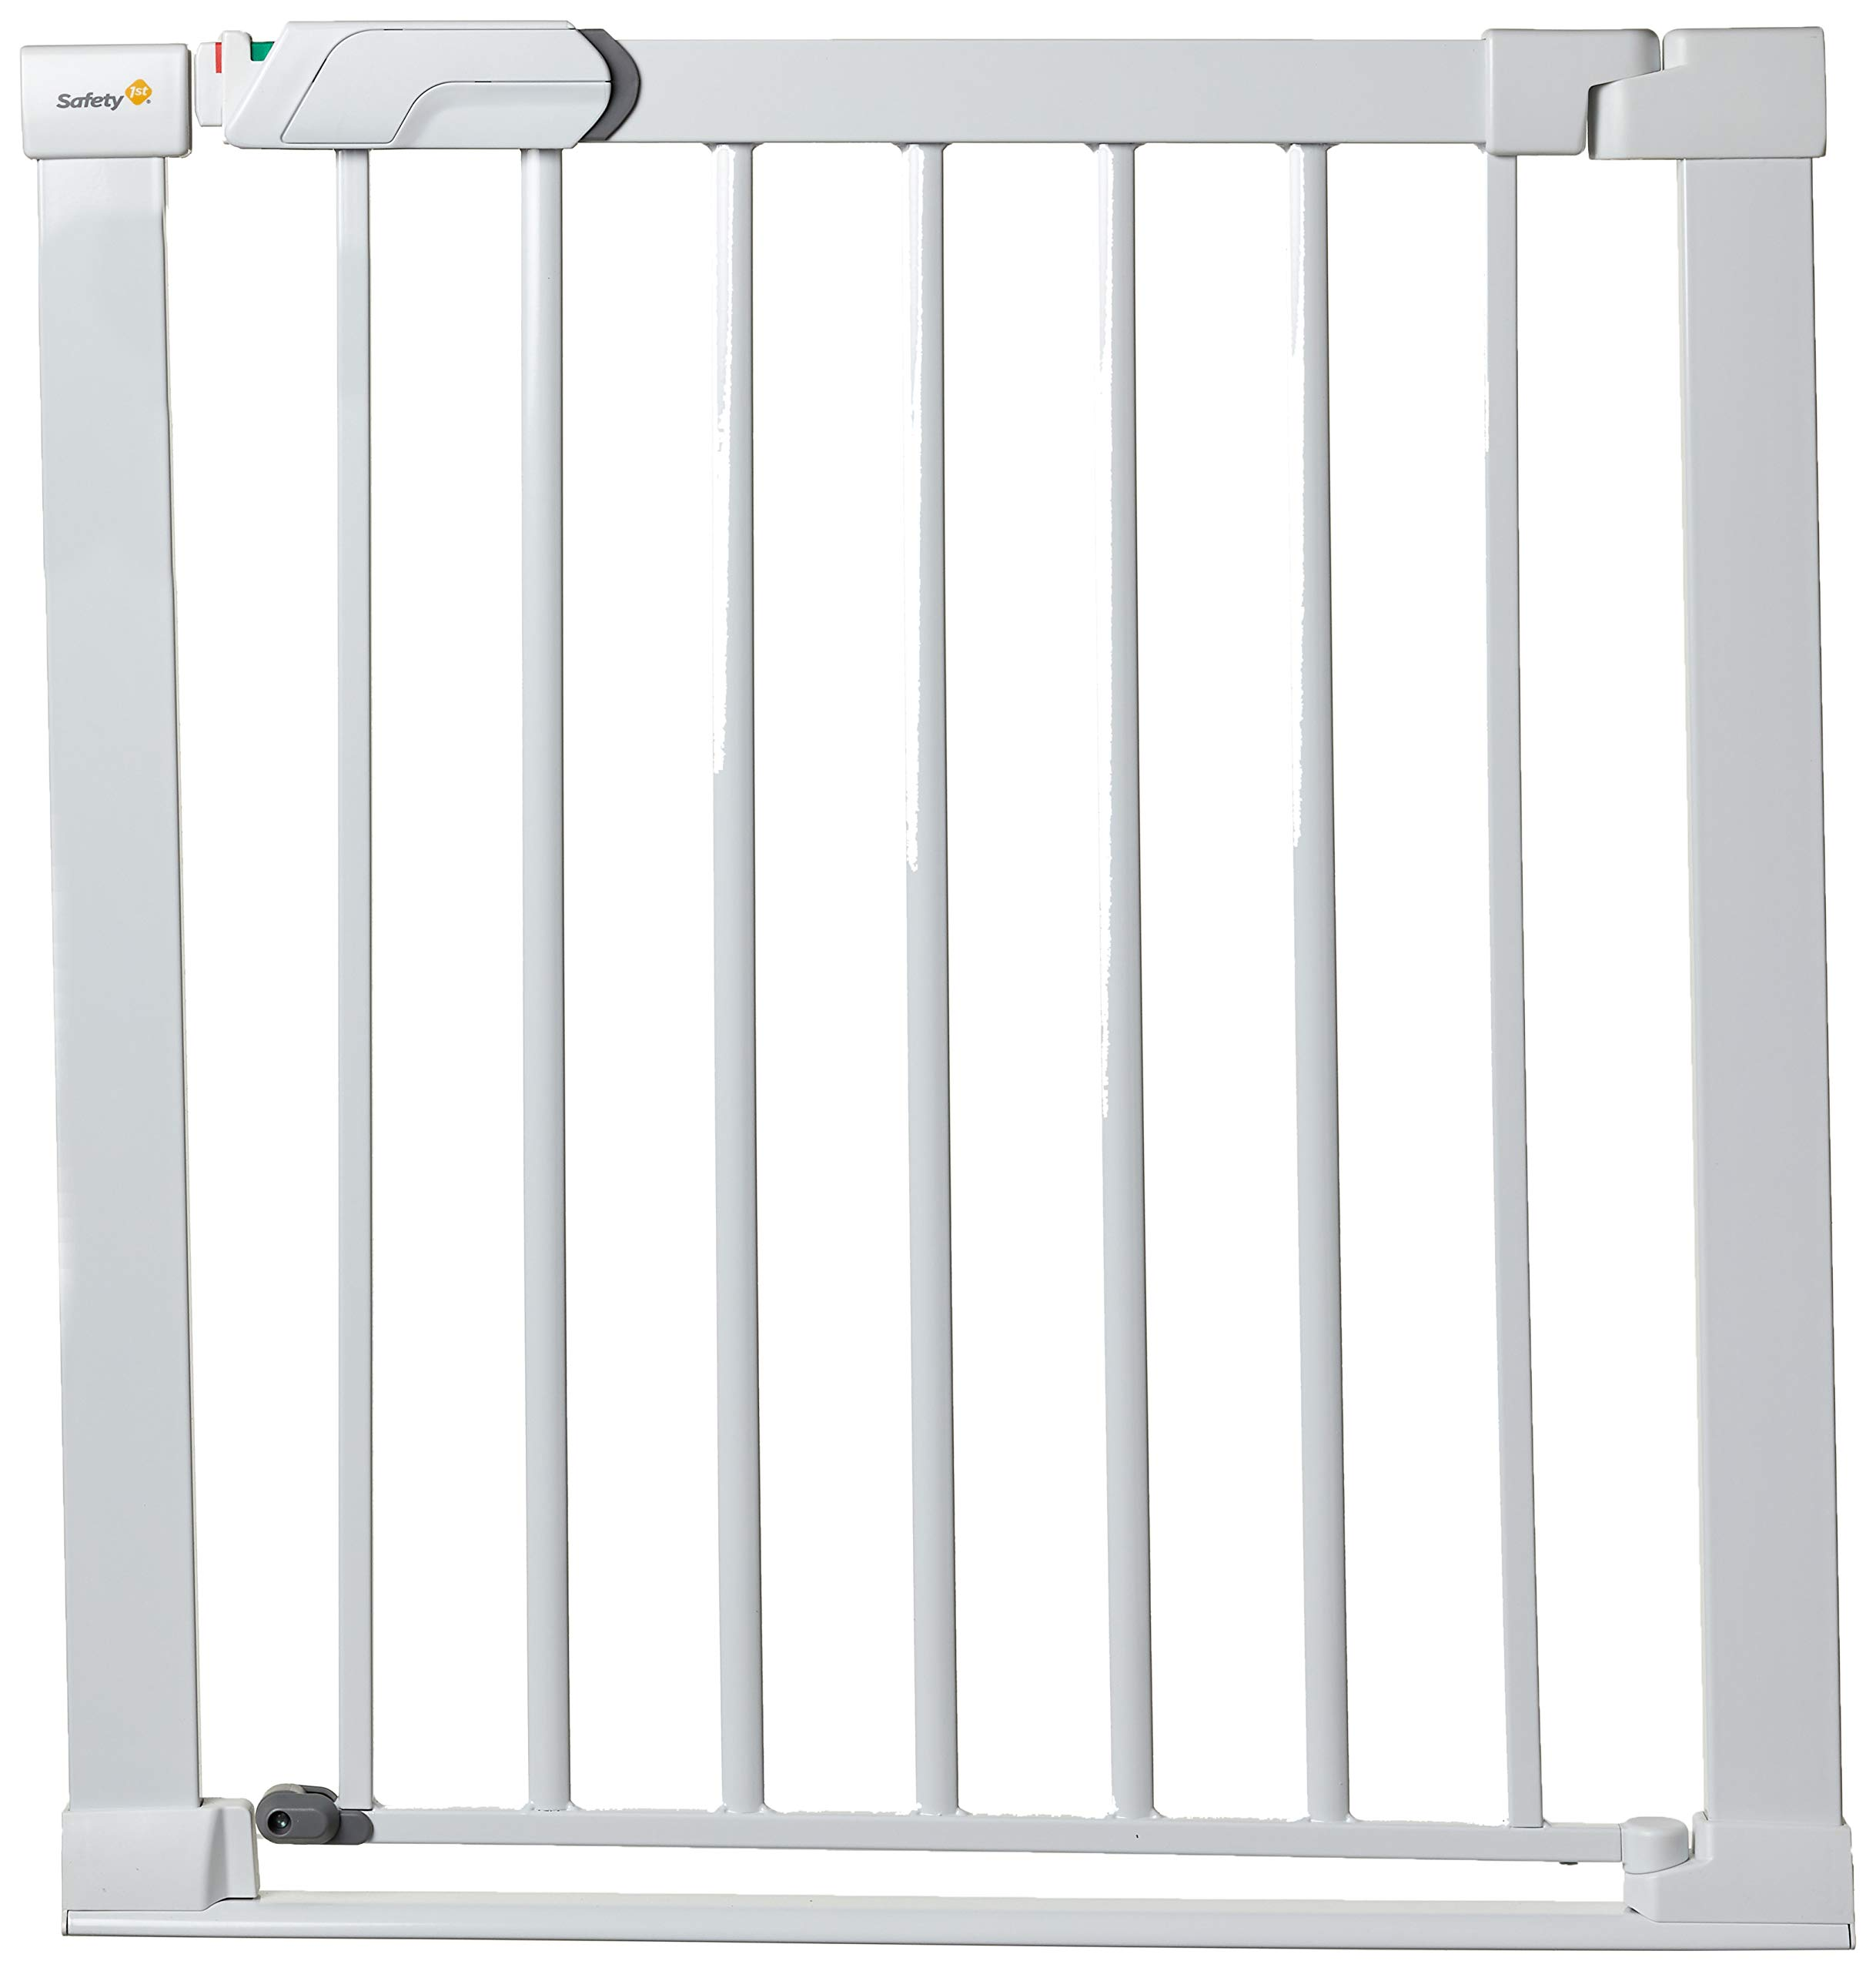 Safety 1st SecureTech Flat Step Practical Safety Metal Gate with Thin Step Over Bar, Ideal for Kids and Pets, 73 to 80 cm, White  Dorel UK Limited